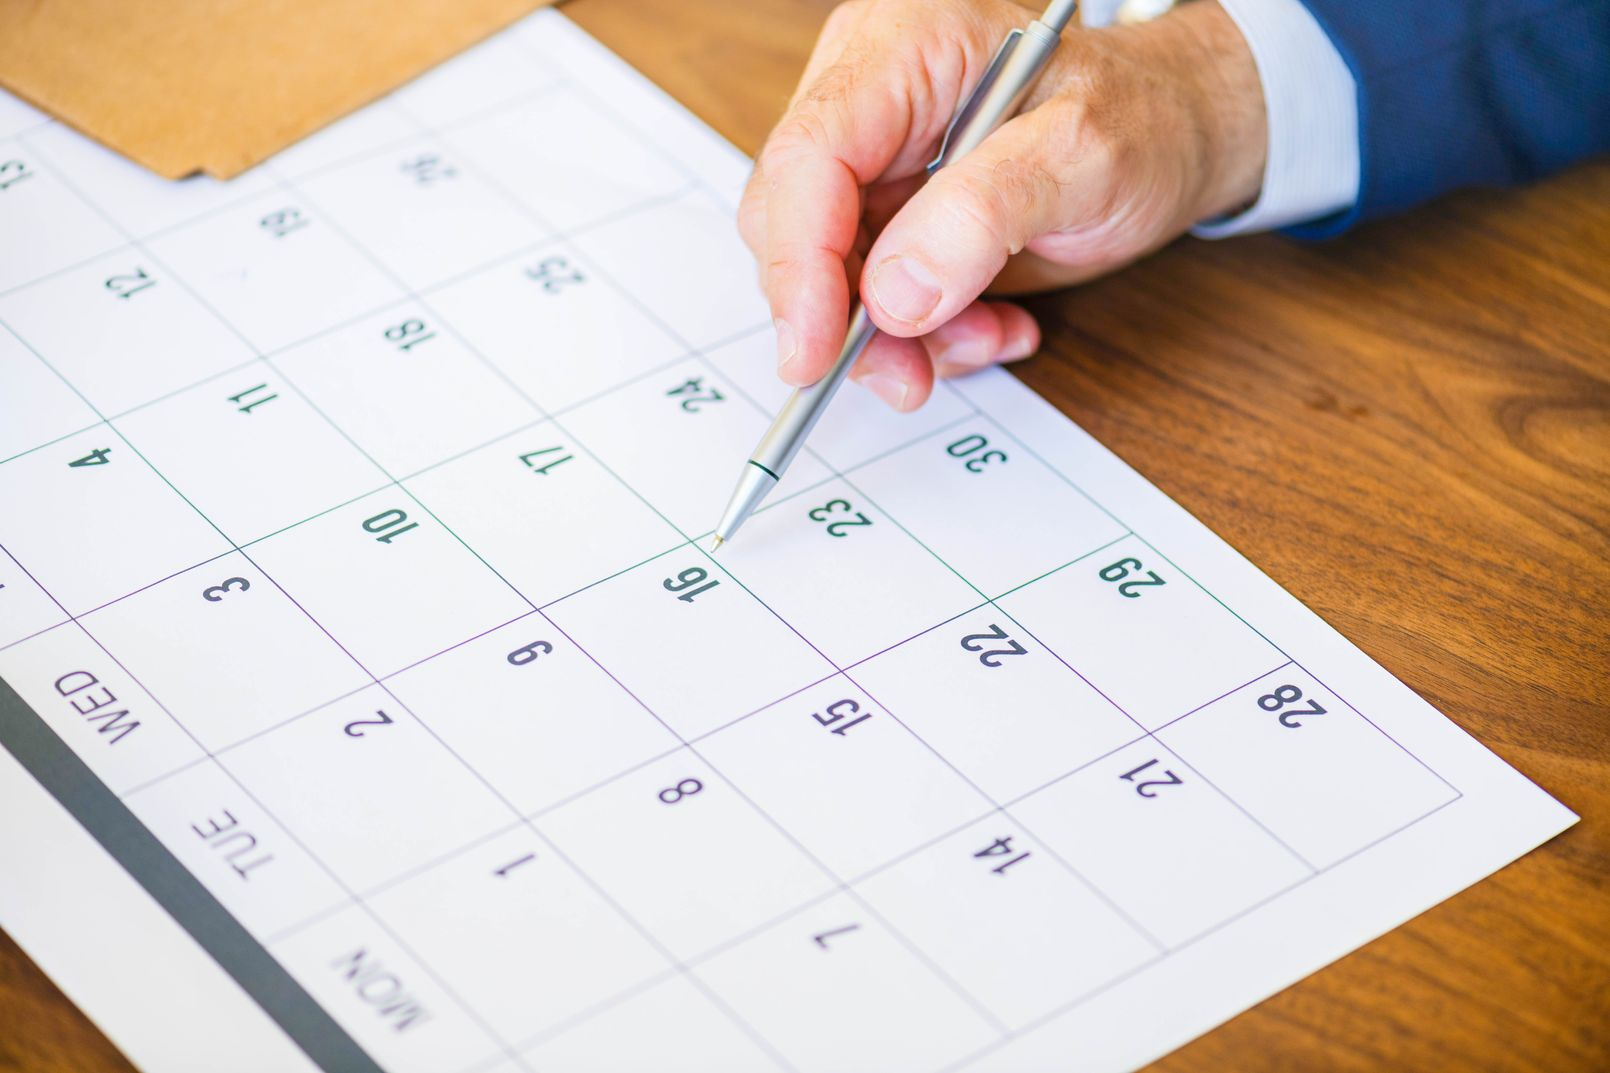 Man's hand holding a pen and pointing to a calendar, undoubtedly setting a deadline for a task to facilitate effective time management